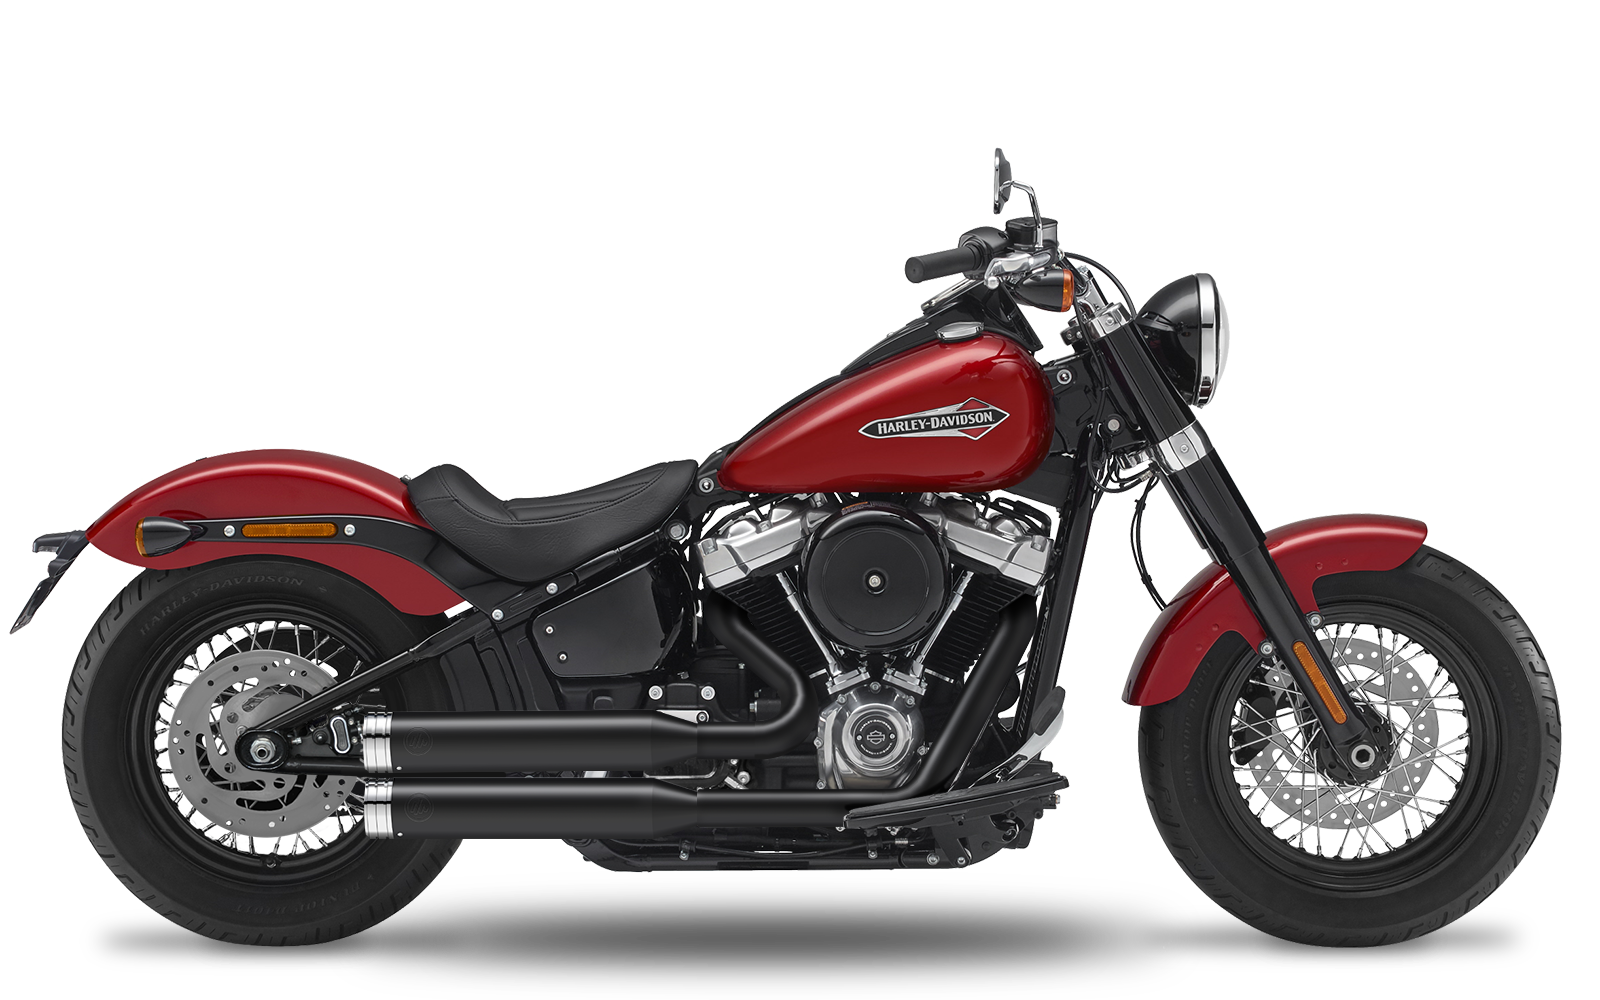 Softail - Slim - ME107 - 2018-2020 - Complete systems